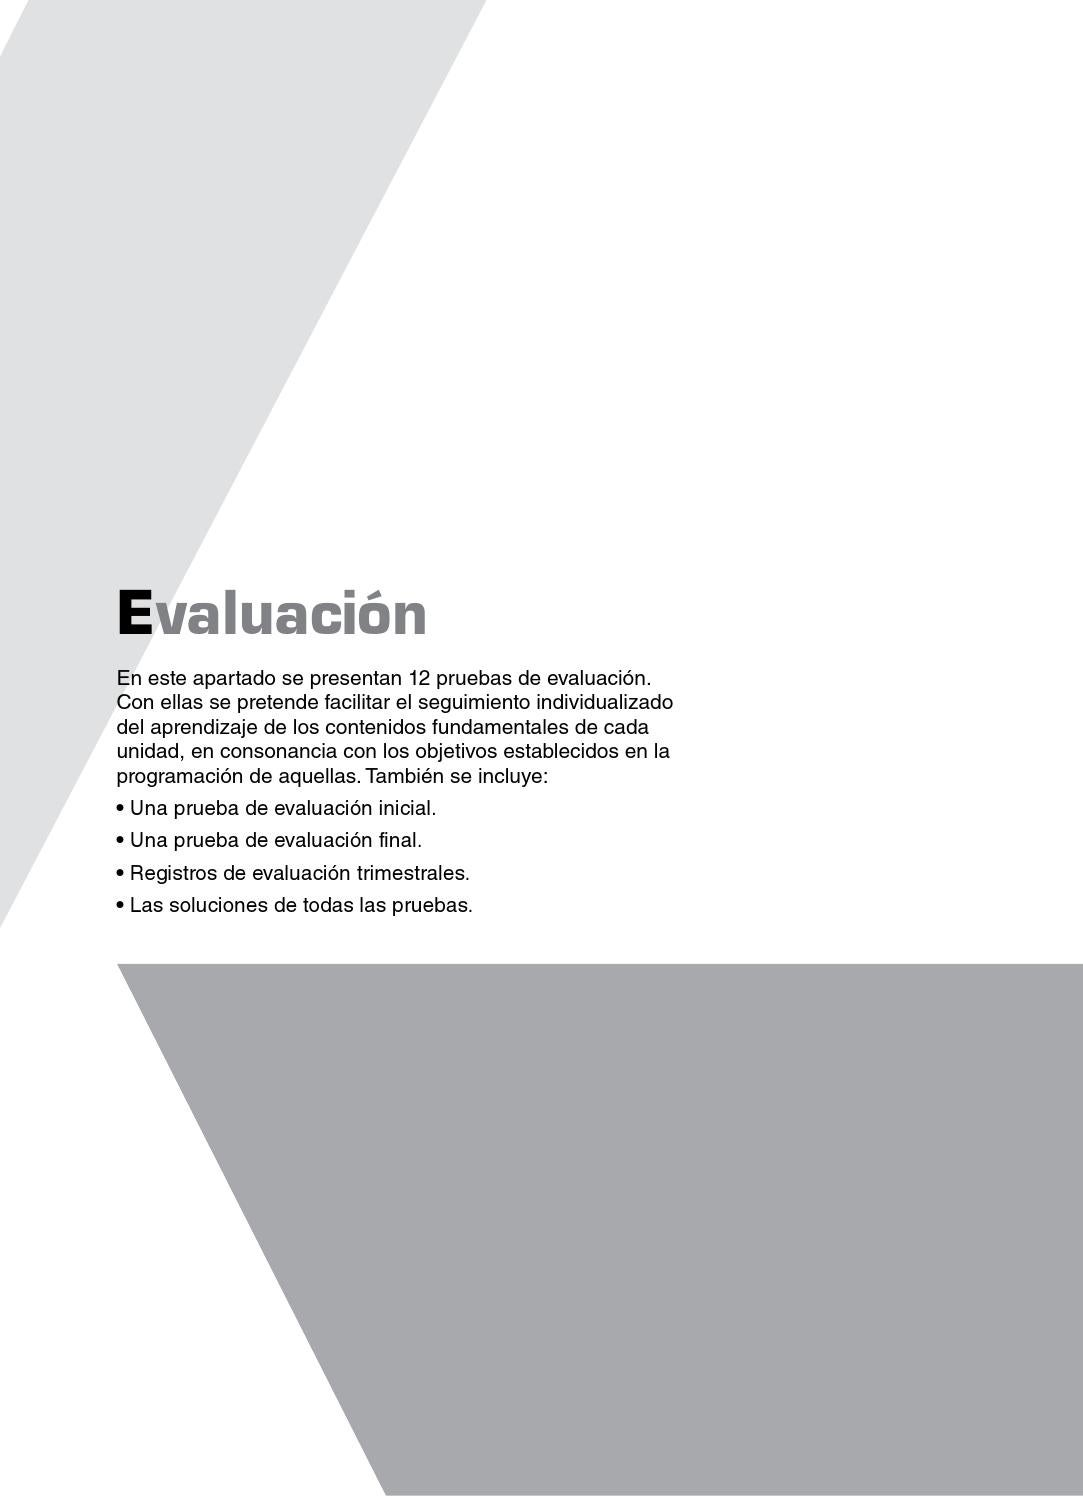 Libro Digital Anaya 1 Eso Evaluacion By Vange Issuu